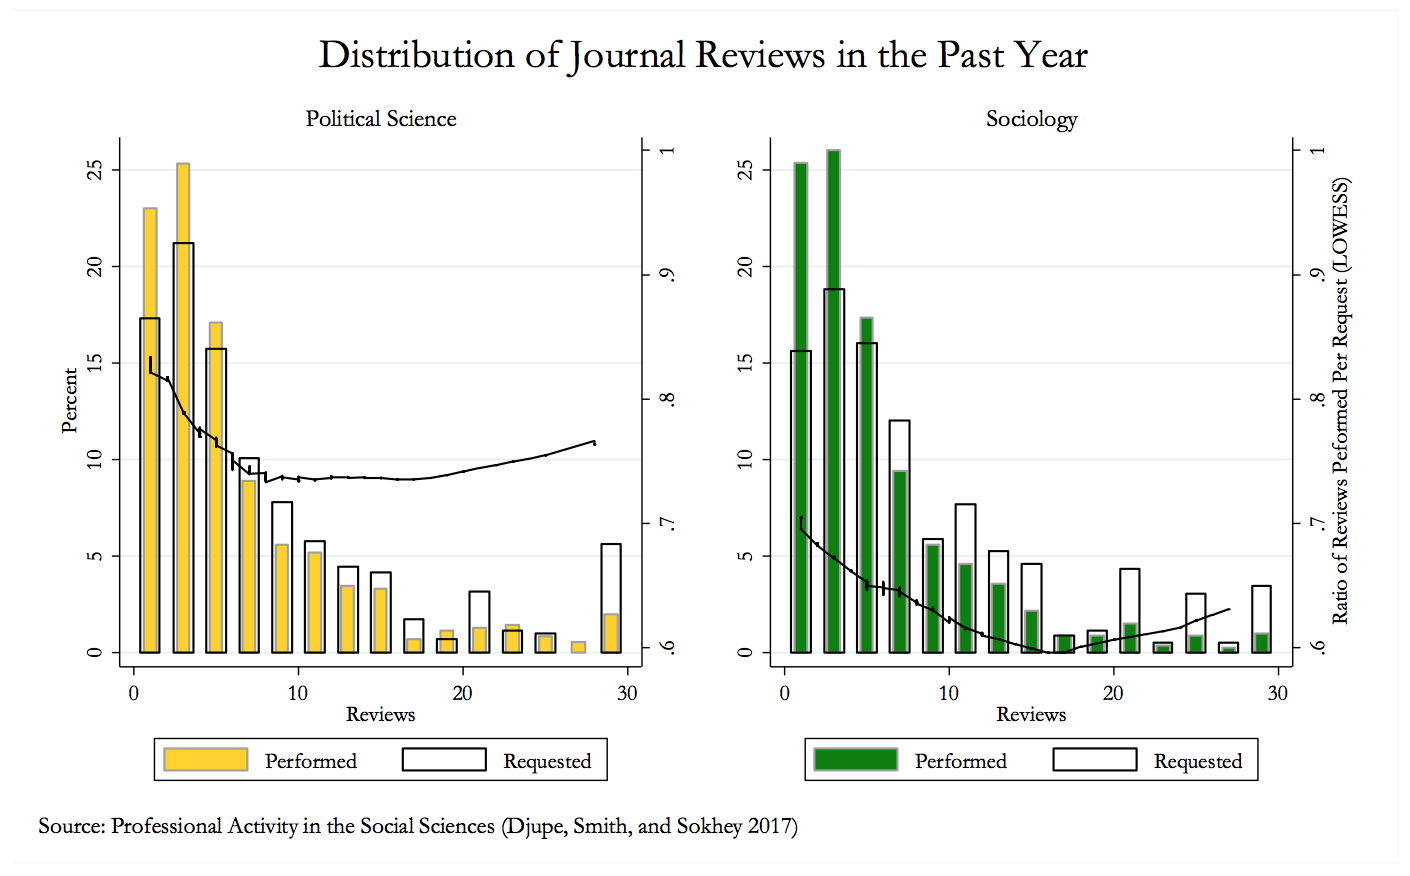 Distribution of journal reviews in the past year. Bar charts show ratio of reviews performed per request for political science and sociology. Source: Professional Activity in the Social Sciences (Djupe, Smith and Sokhey 2017).